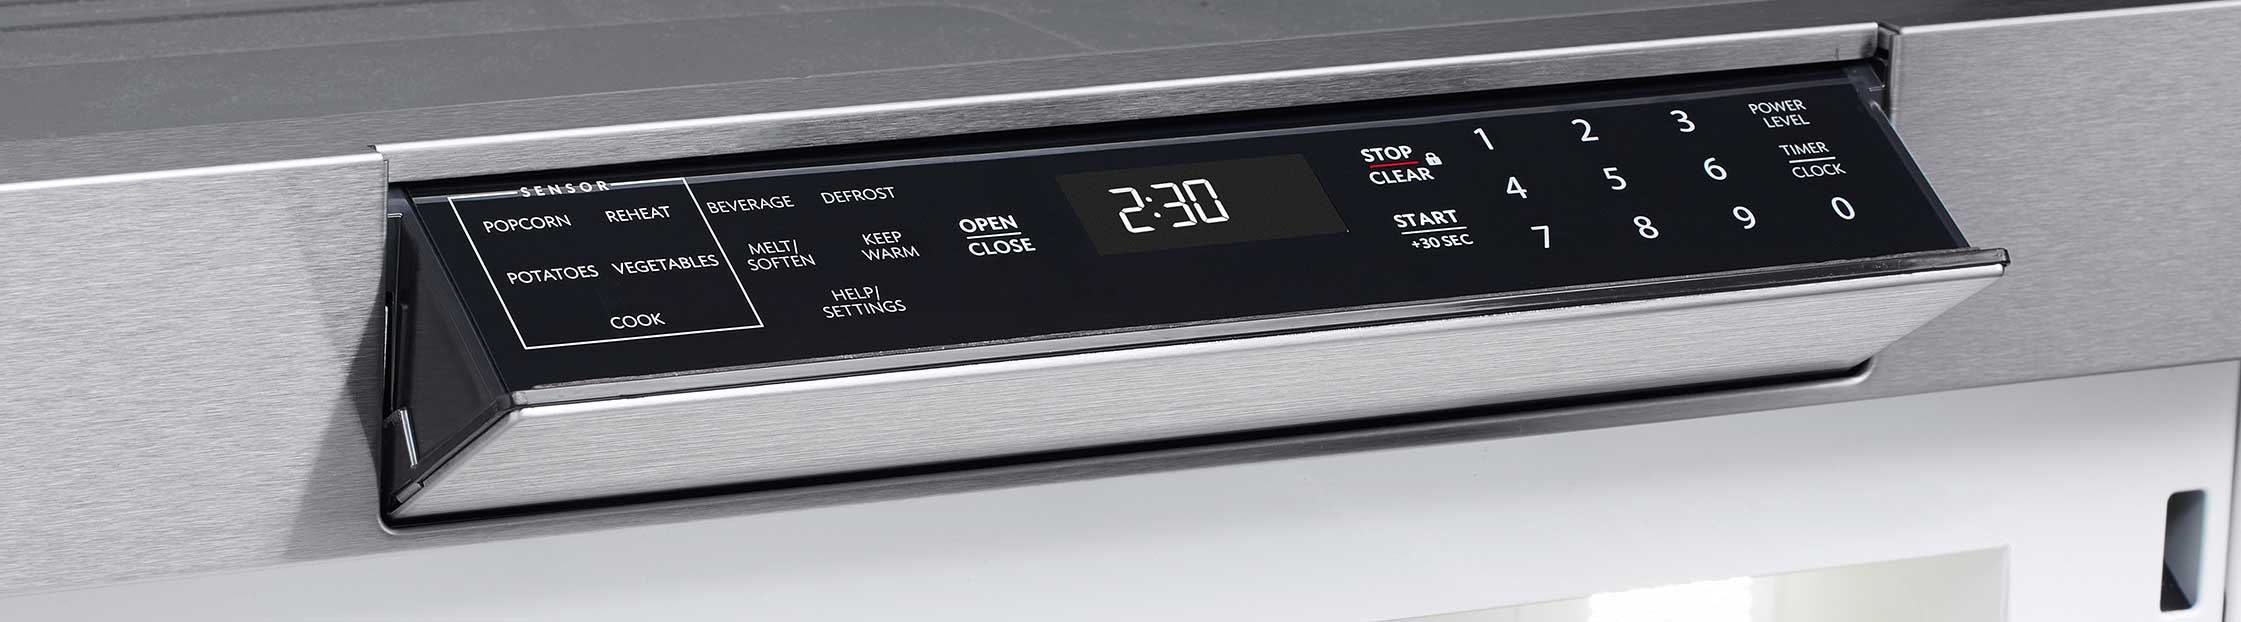 Hidden Control Panel The Smd3070as Microwave Drawer Oven